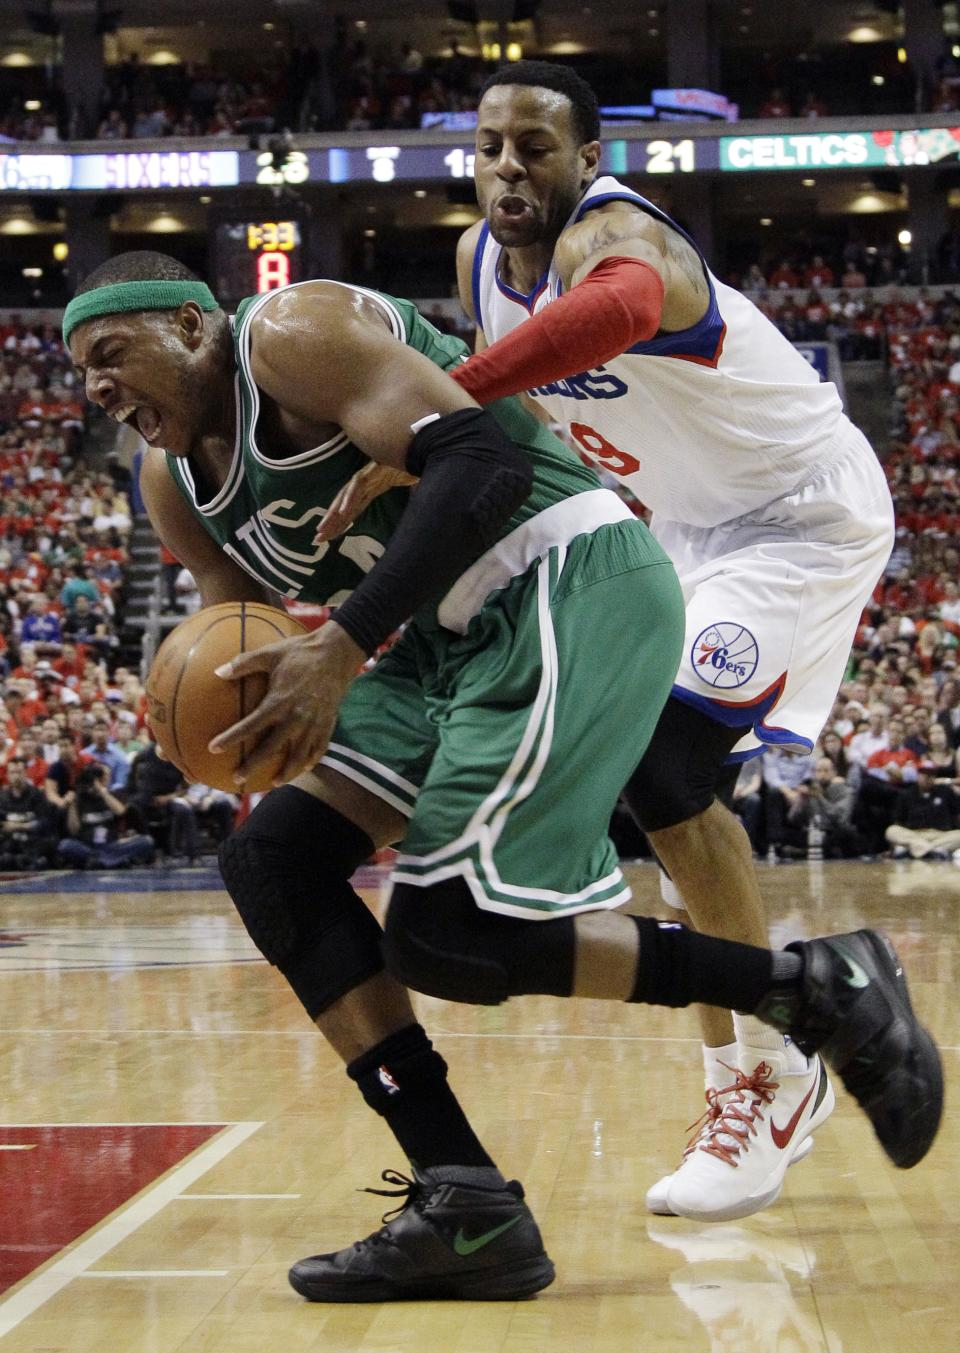 Philadelphia 76ers' Andre Iguodala, right, pressures Boston Celtics' Paul Pierce during the first half of Game 3 of an NBA basketball Eastern Conference semifinal playoff series, Wednesday, May 16, 2012, in Philadelphia. (AP Photo/Matt Slocum)